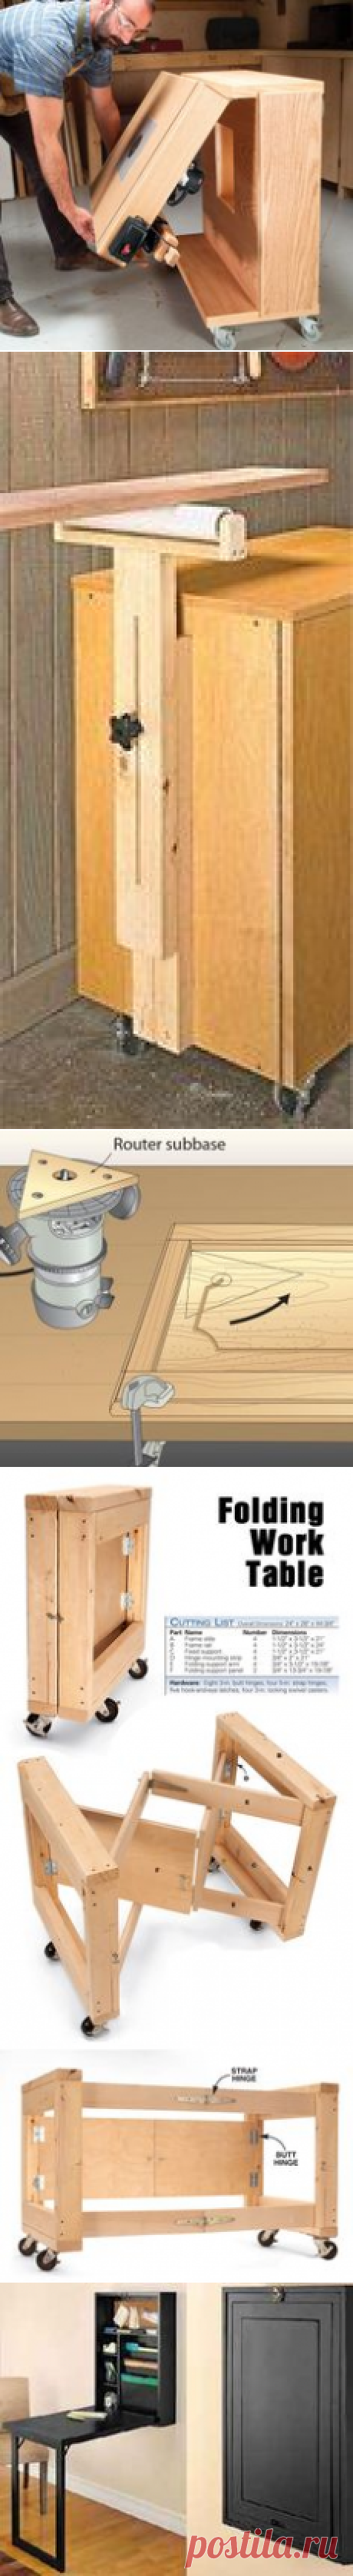 (43) Space-Saving Router Table   Woodsmith Tips   tools for evan